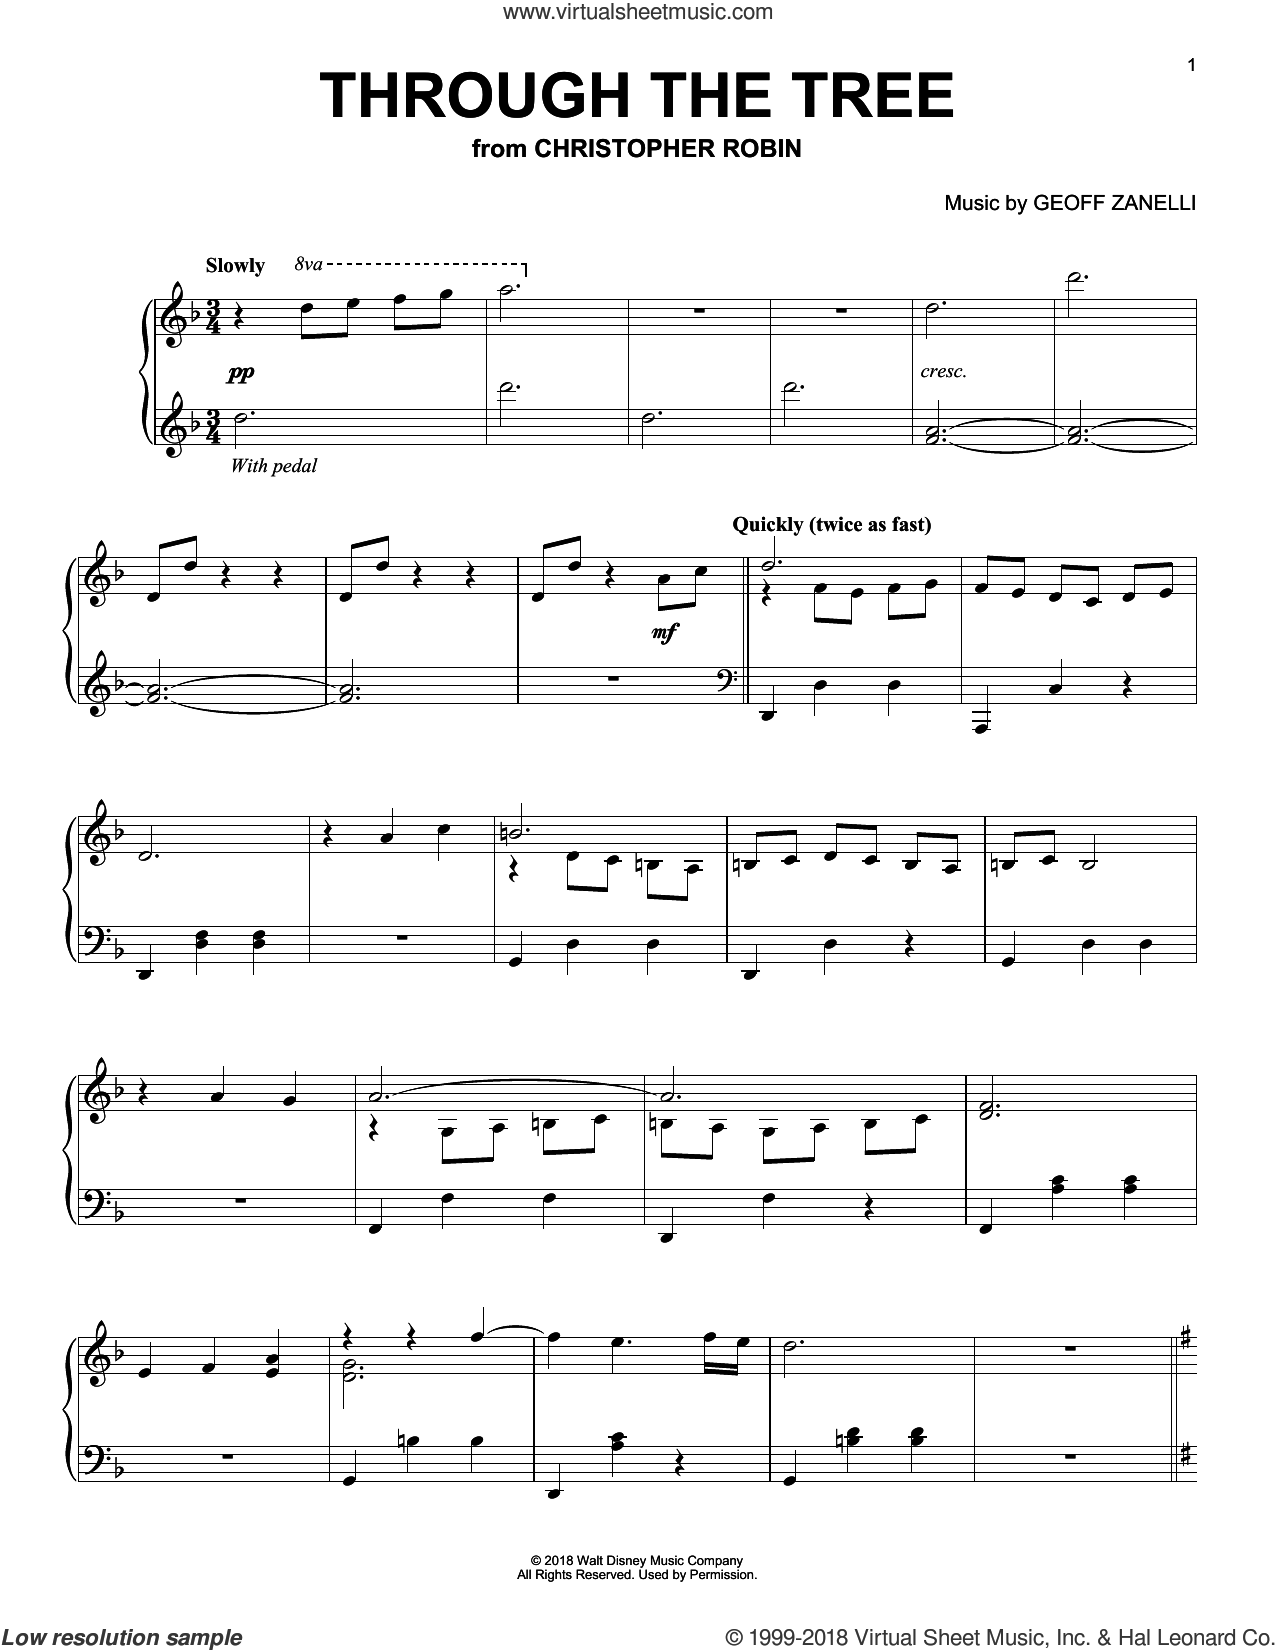 Through The Tree (from Christopher Robin) sheet music for piano solo by Geoff Zanelli & Jon Brion, Geoff Zanelli and Jon Brion, intermediate skill level